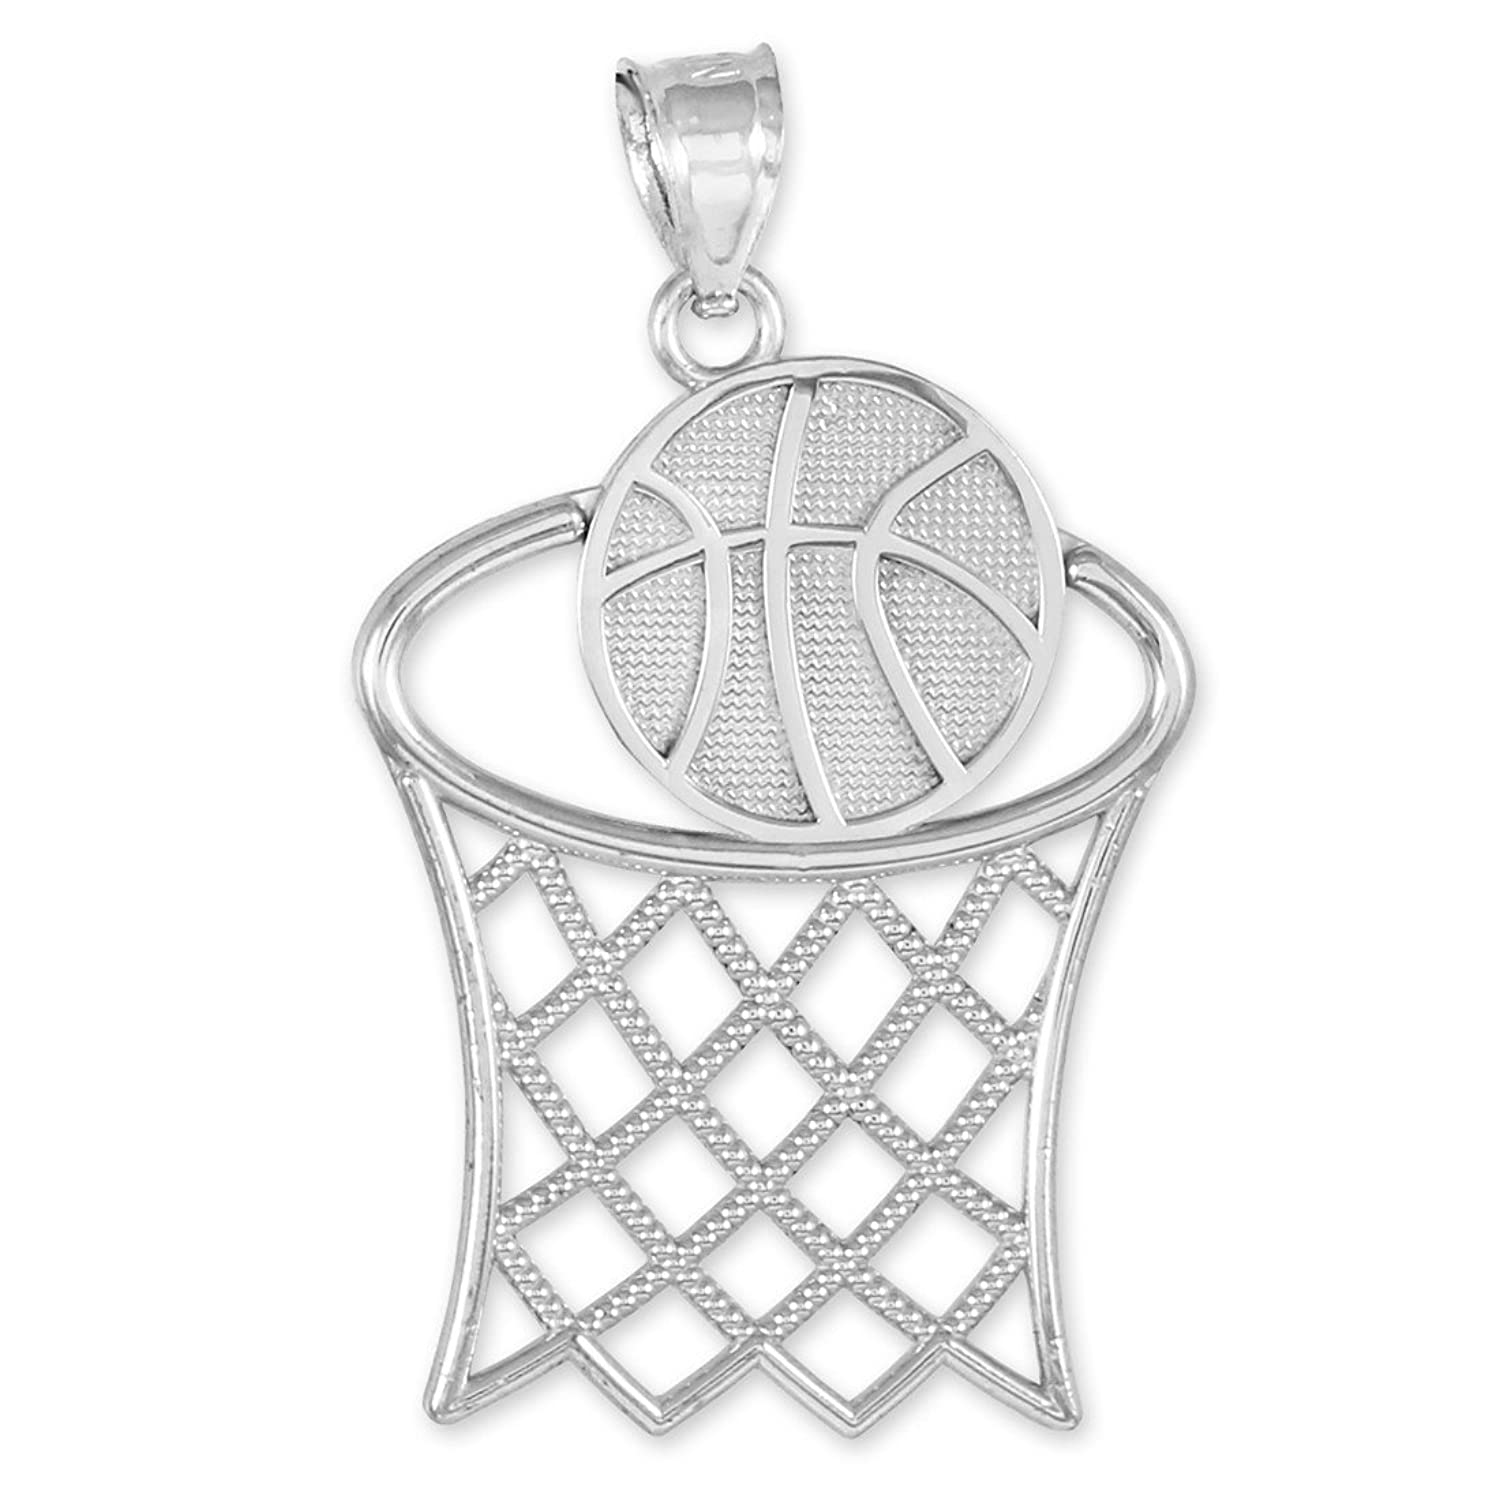 925 sterling silver basketball hoop sports charm pendant amazon 925 sterling silver basketball hoop sports charm pendant amazon jewelry mozeypictures Images